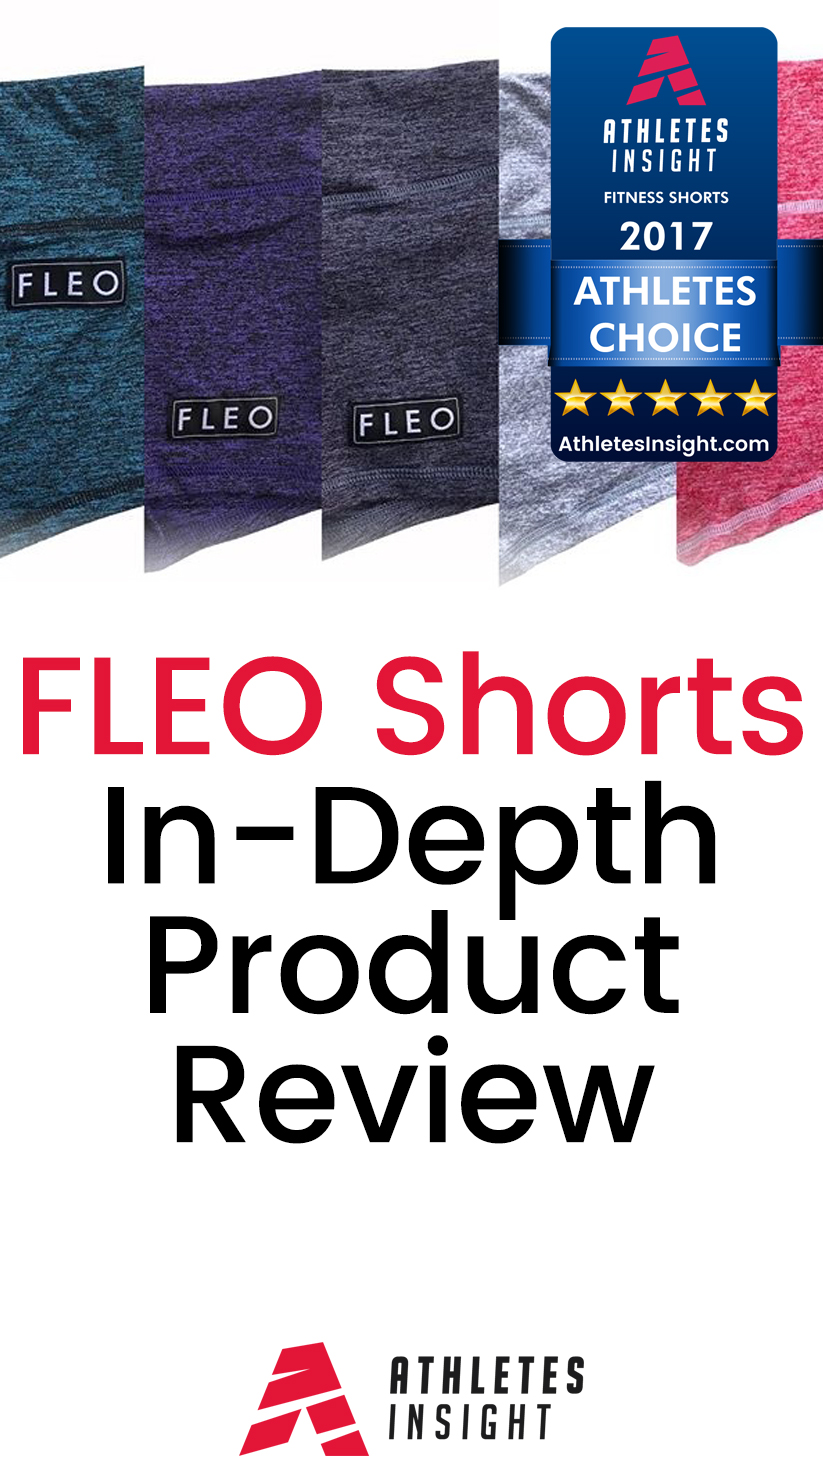 FLEO Shorts Product Review